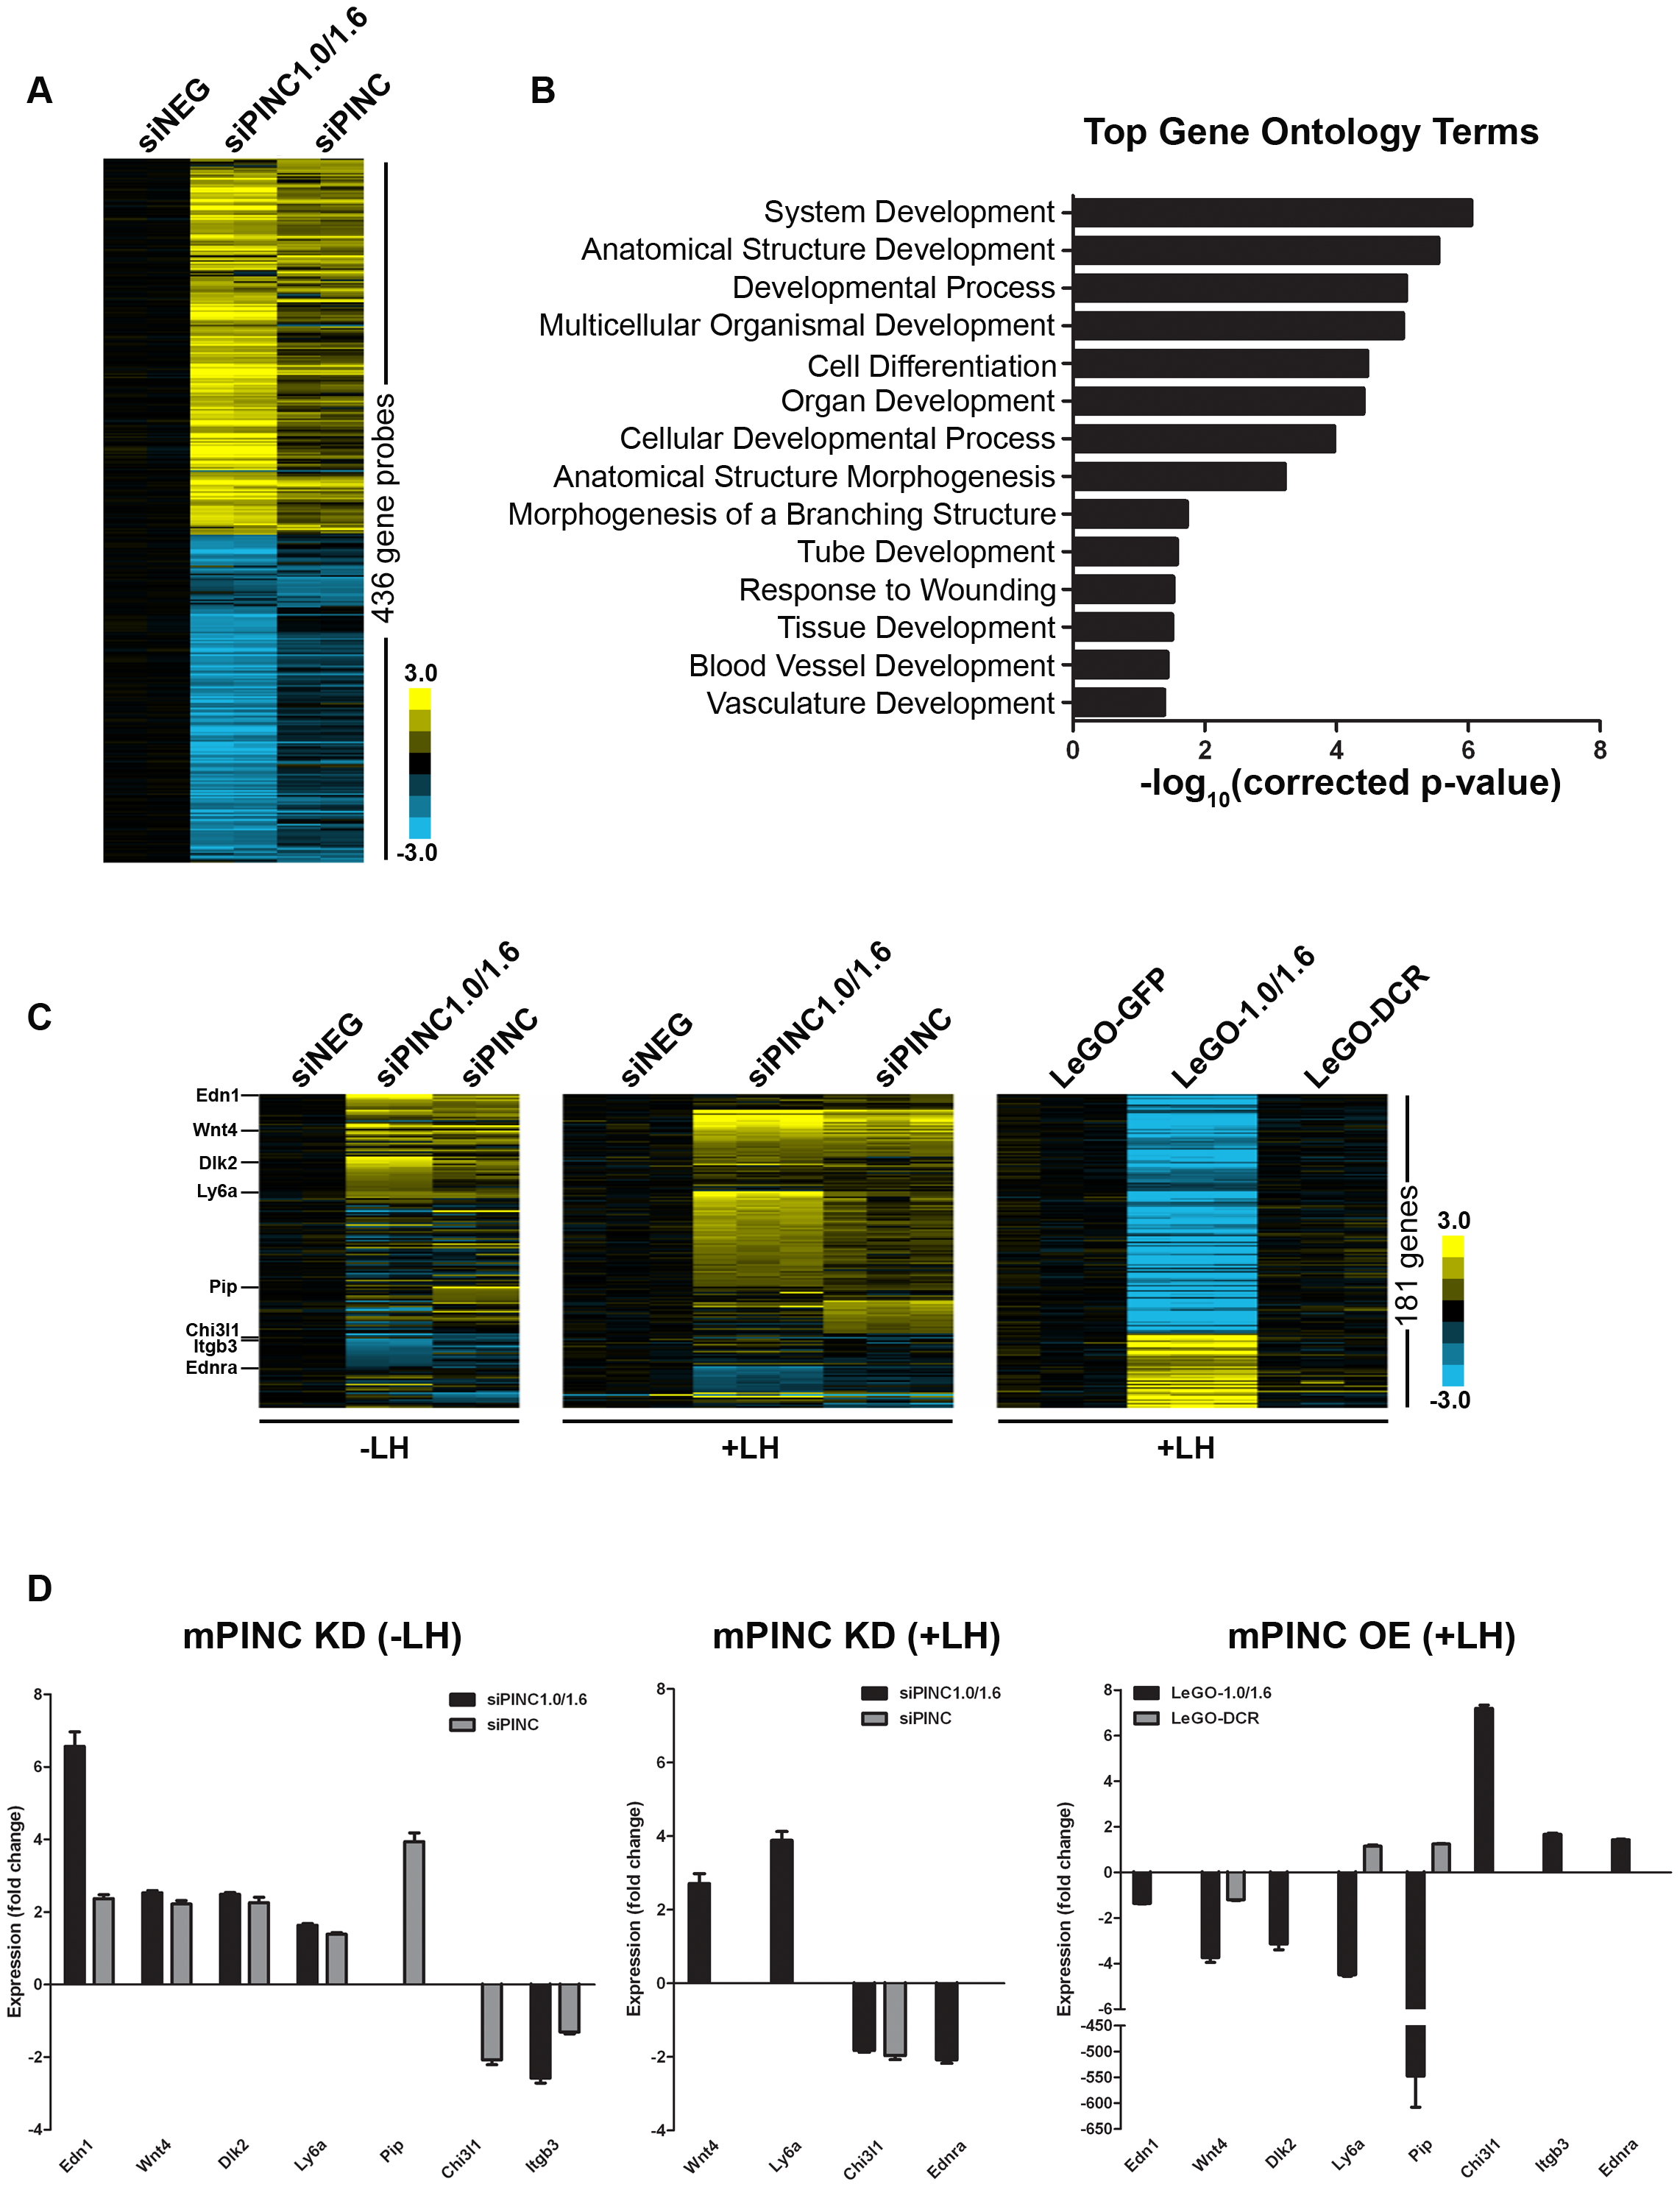 Microarray identifies potential targets of <i>mPINC</i> in HC11 cells.